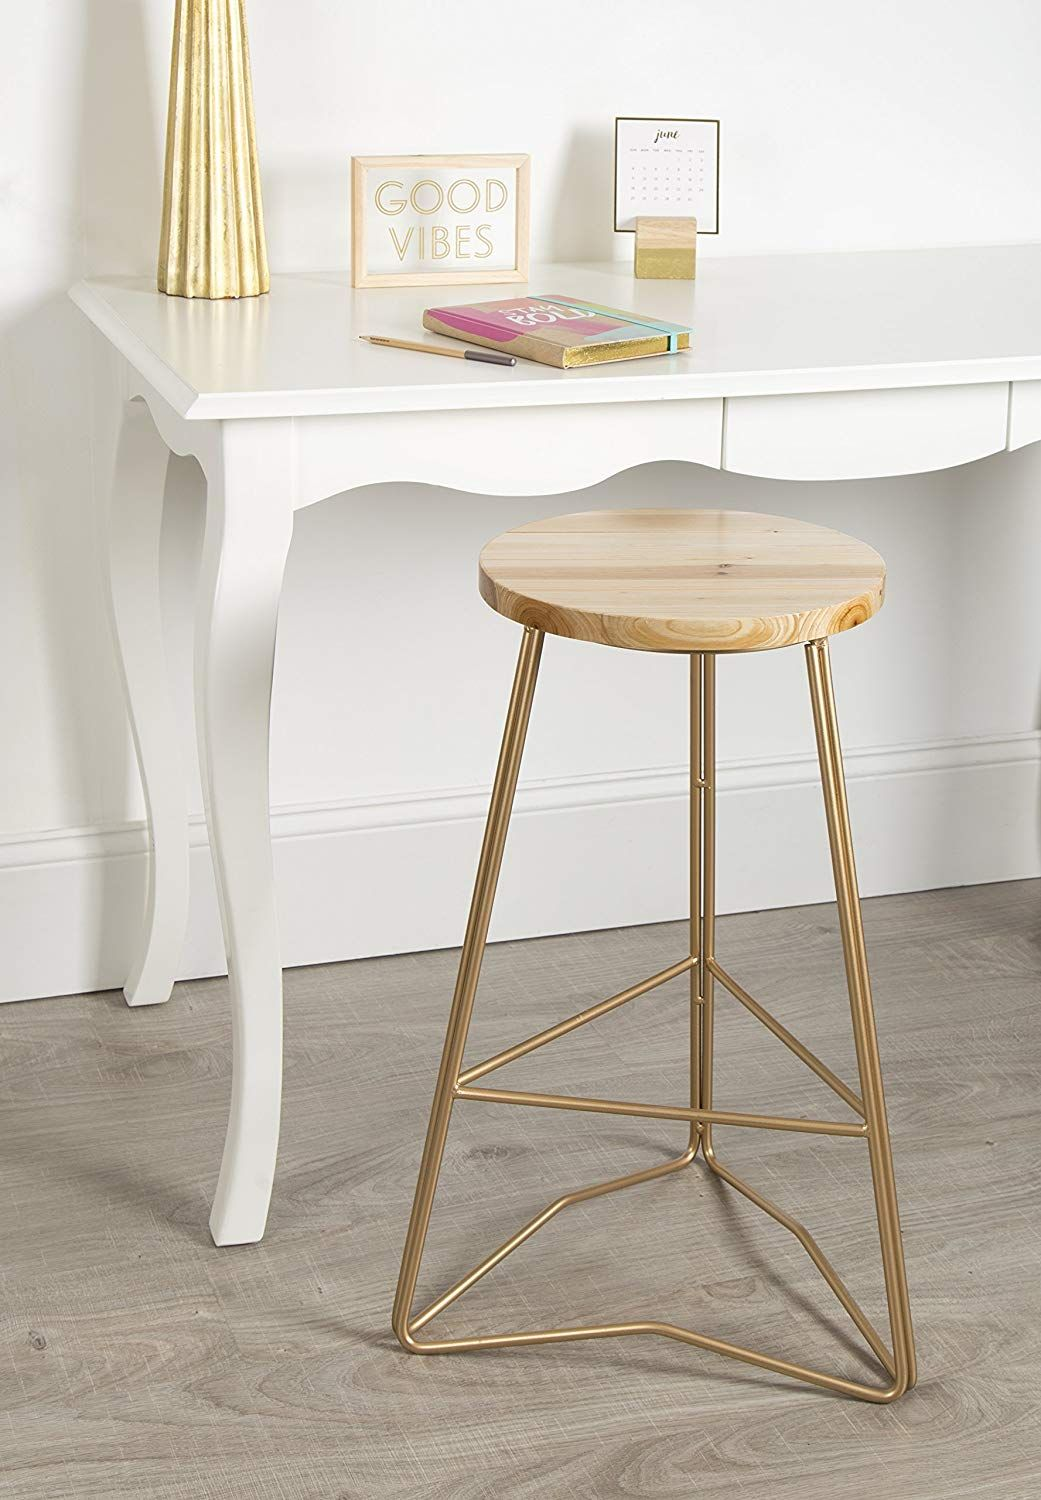 Gold And Wood Backless Bar Stool Kate And Laurel 212818 Godwin